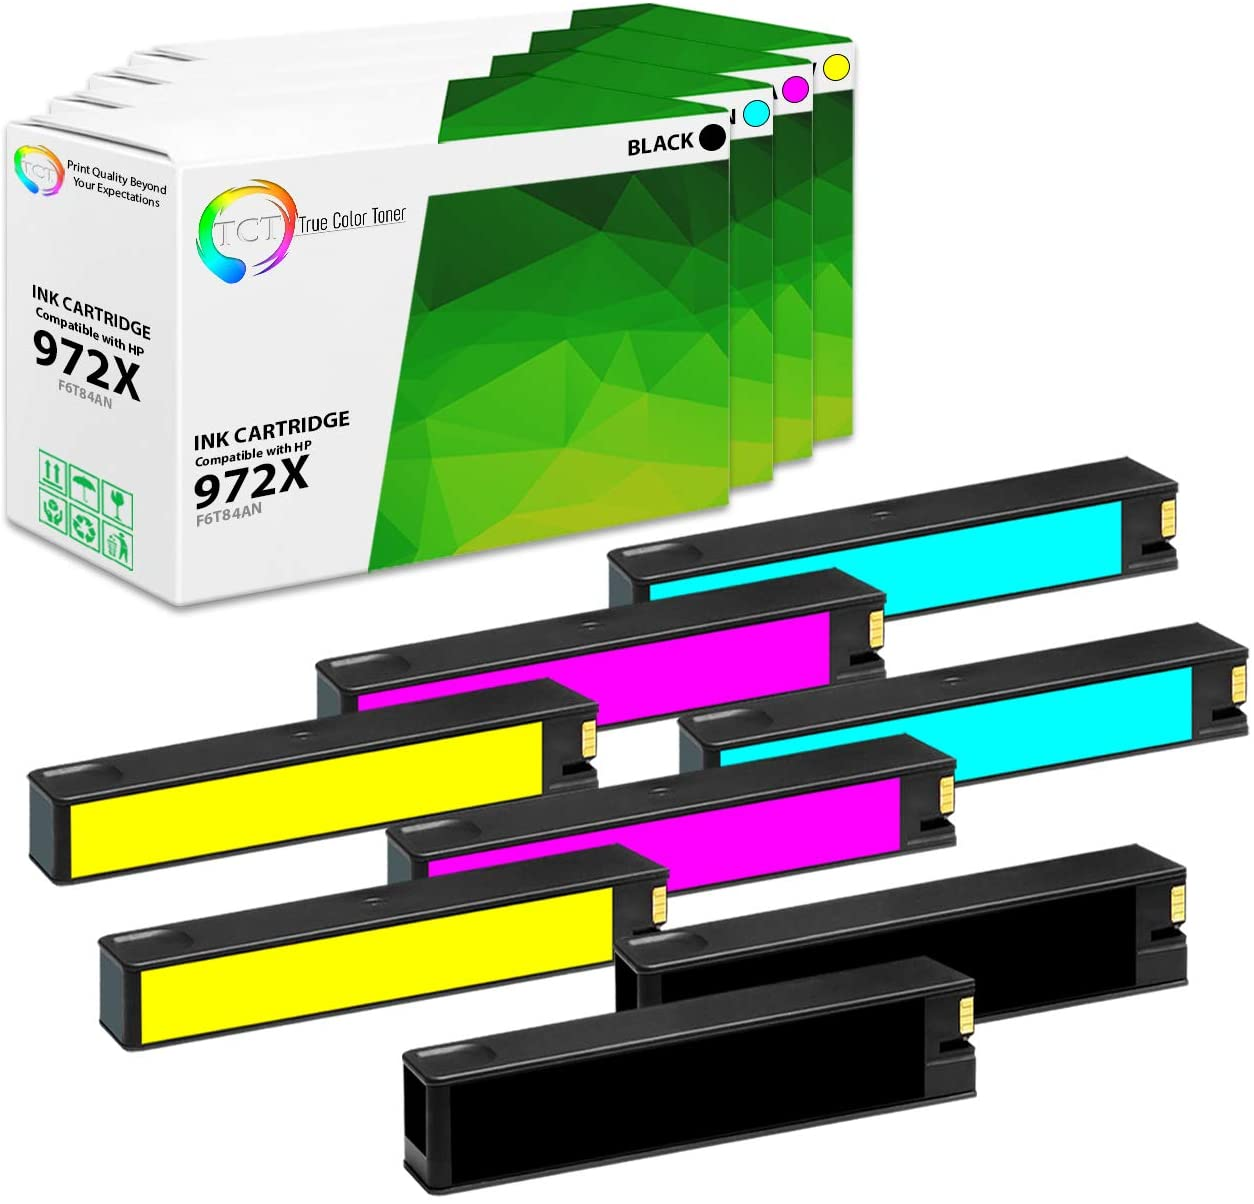 TCT Compatible Ink Cartridge Replacement for HP 972X High Yield Works with HP PageWide Pro 452dn 477dn 477dw 552dw Printers (Black F6T84AN, Cyan L0R98AN, Magenta L0S01AN, Yellow L0S04AN) - 8 Pack